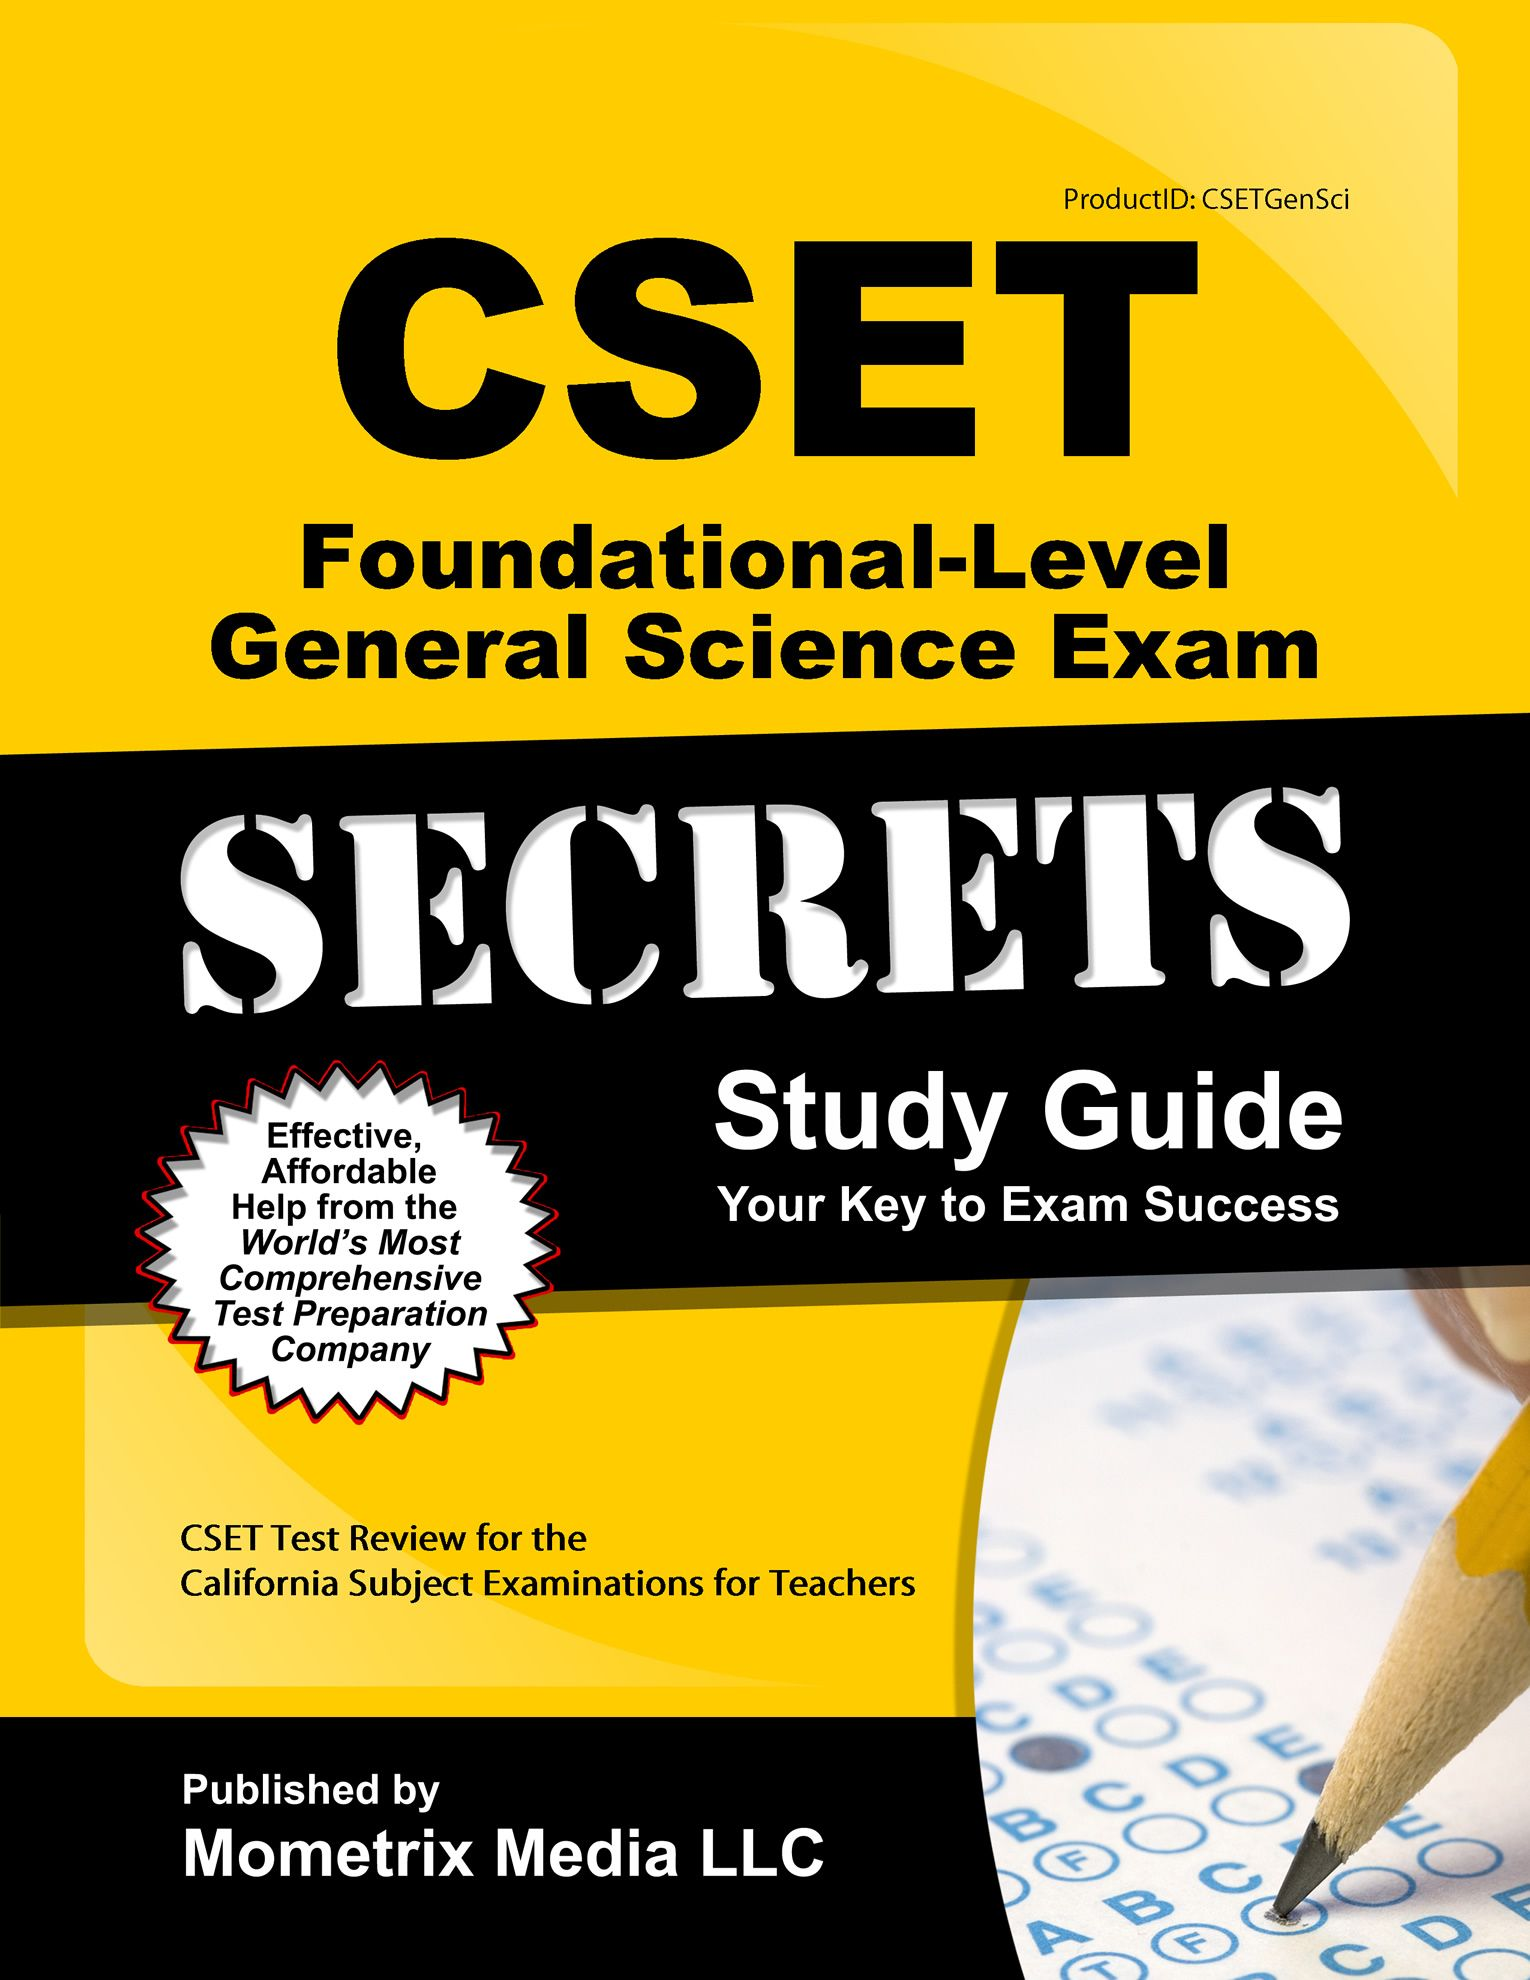 Cset science: study guide & test prep course online video.